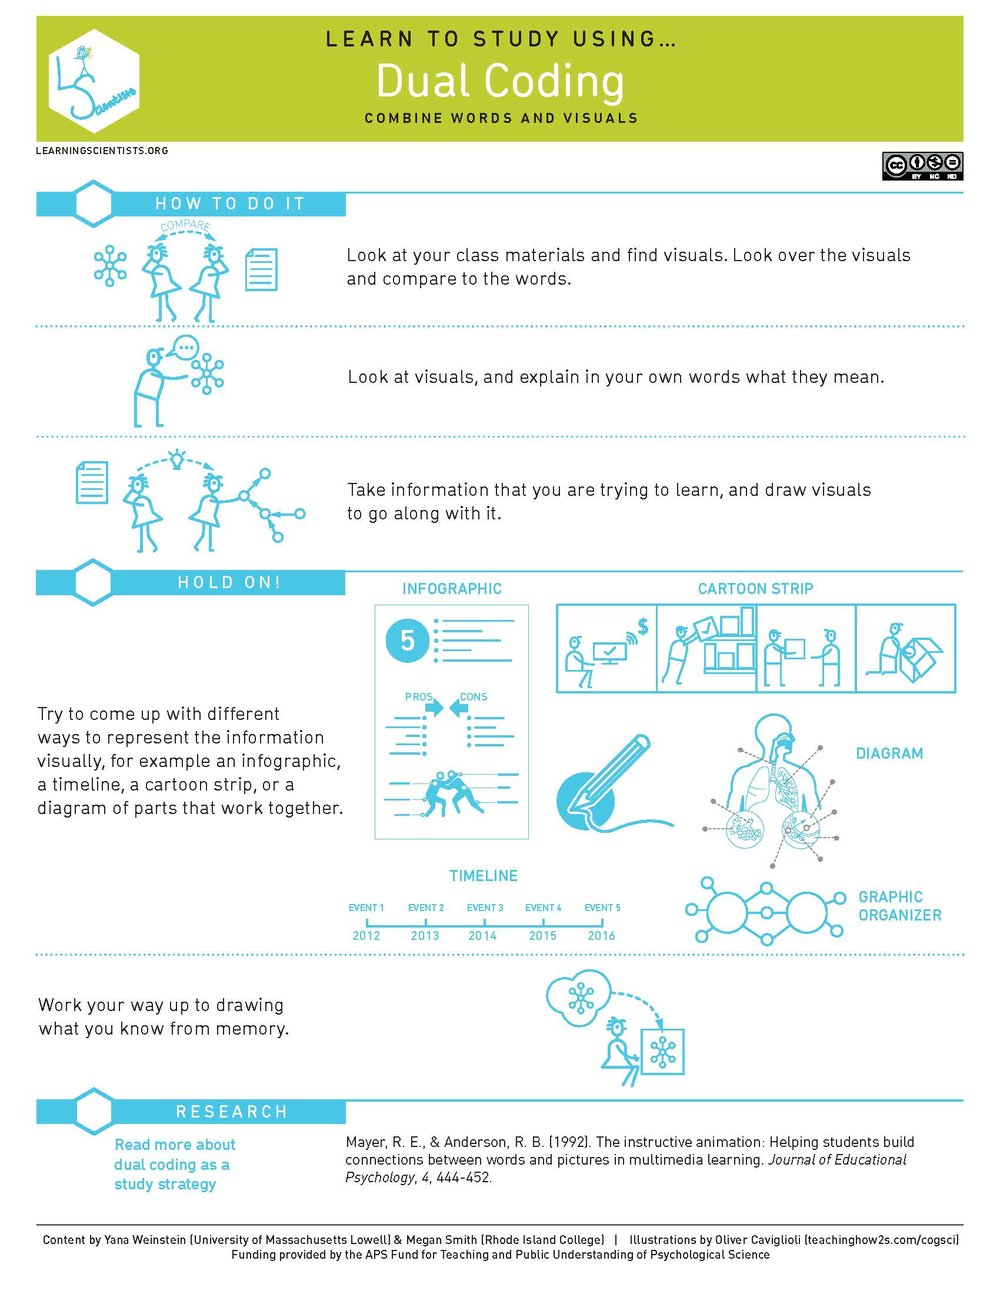 Click to download the Dual Coding poster